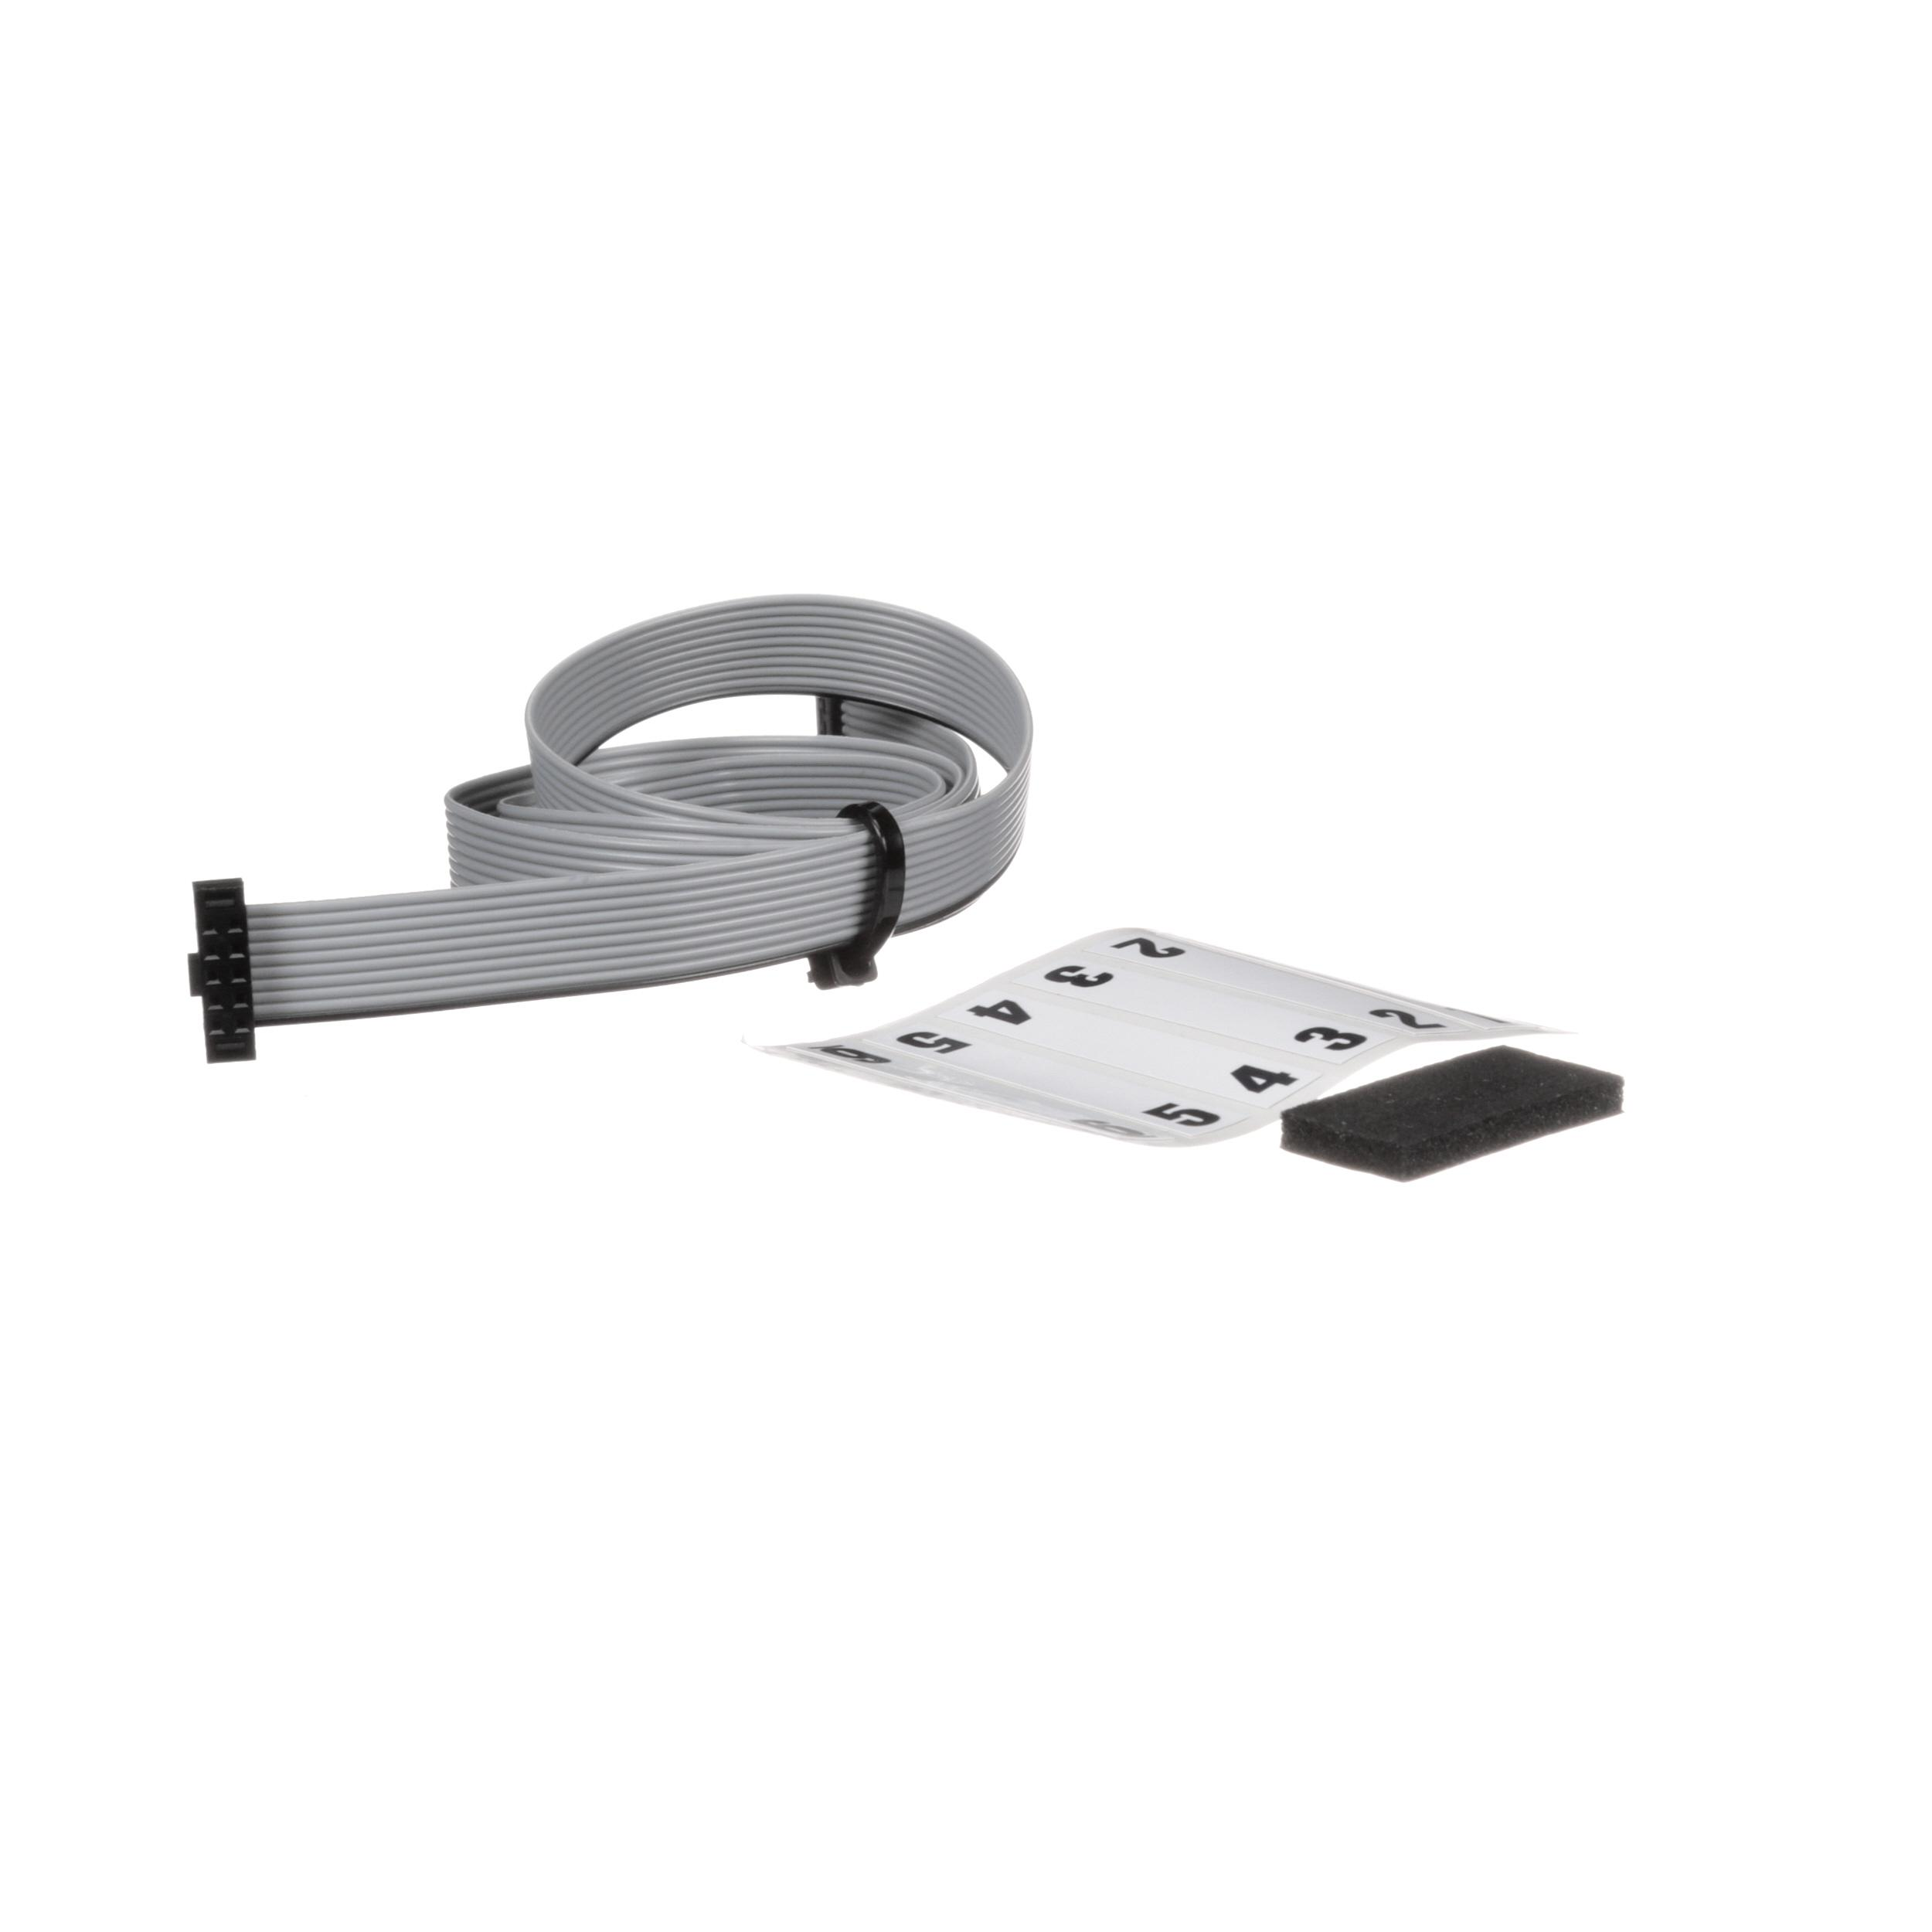 PRINCE CASTLE *KIT,RIBBON CABLE (18IN)